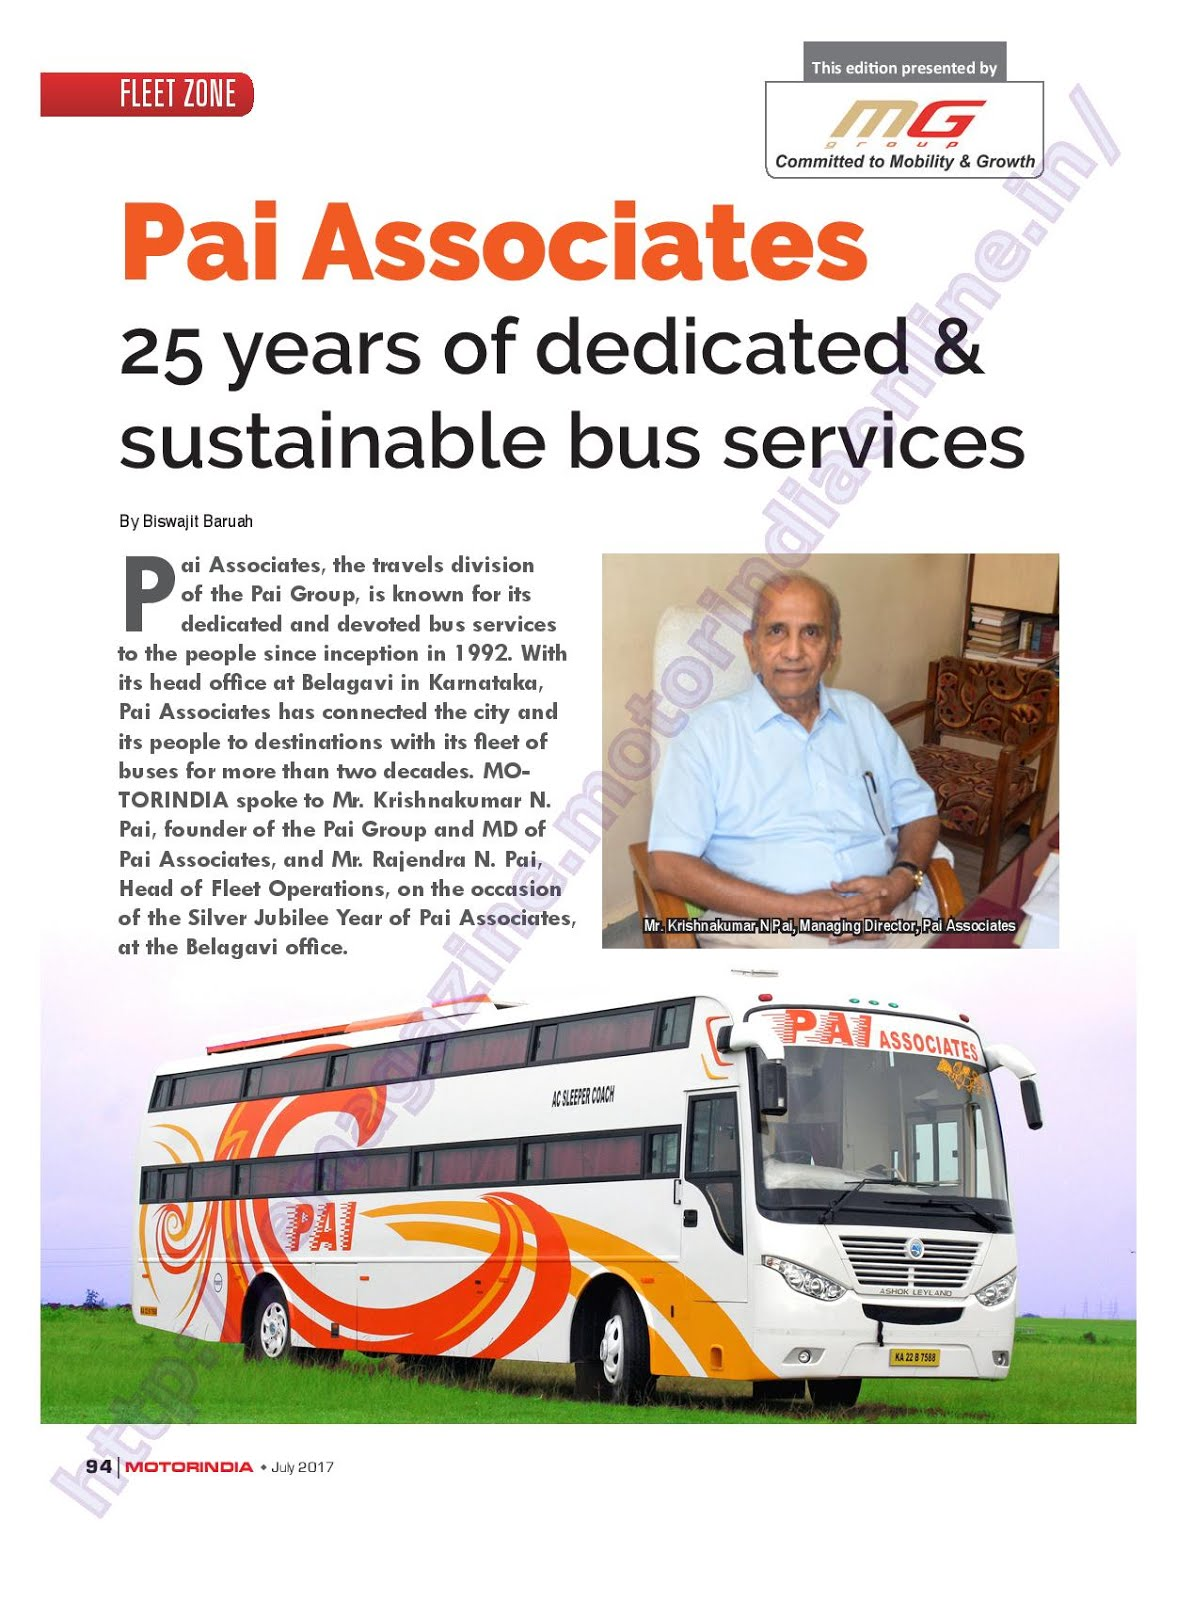 MOTOR INDIA ARTICLE 14 : PAI ASSOCIATES